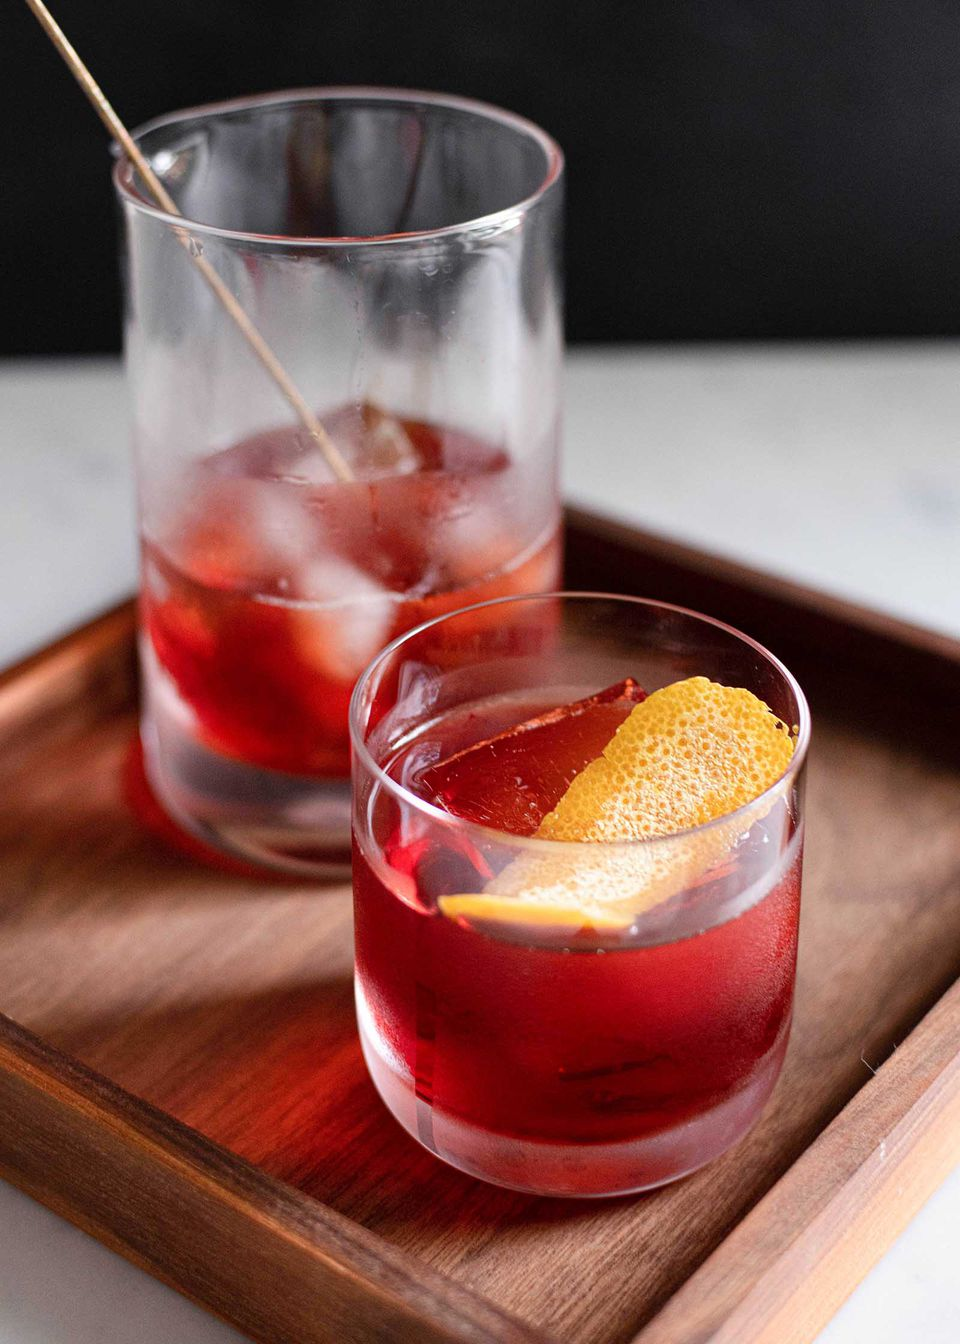 A boulevardier cocktail is a negroni with whiskey instead of gin